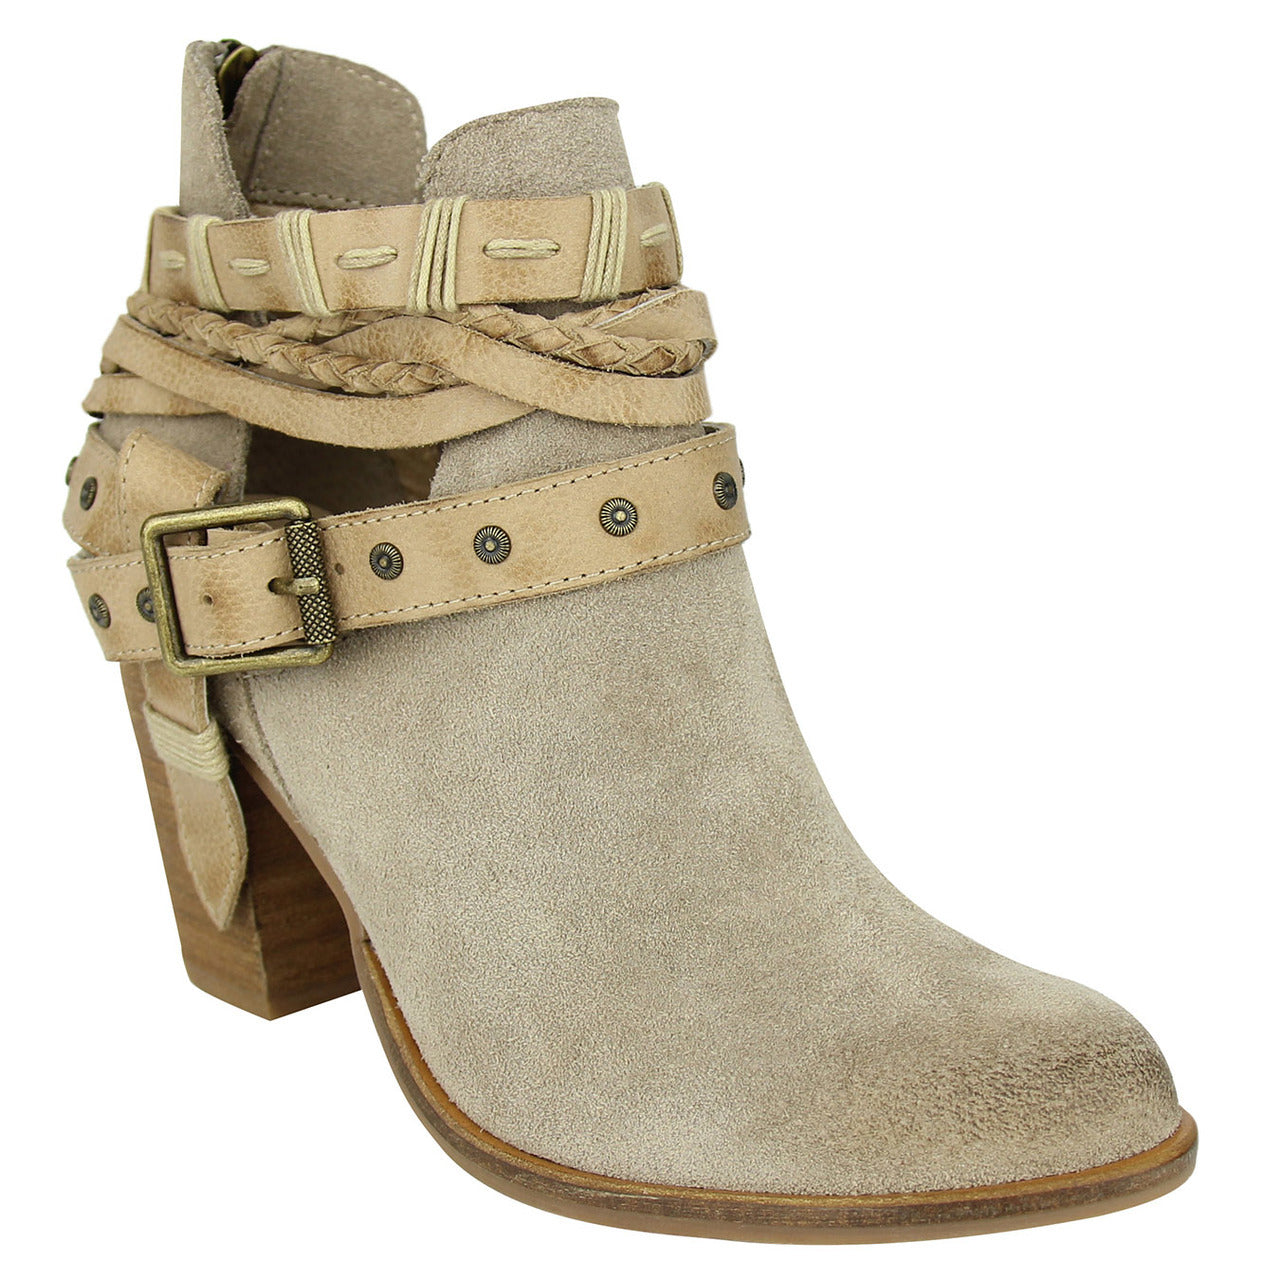 naughty_monkey_bootie_Cuthbert-Taupe_stacked-heel